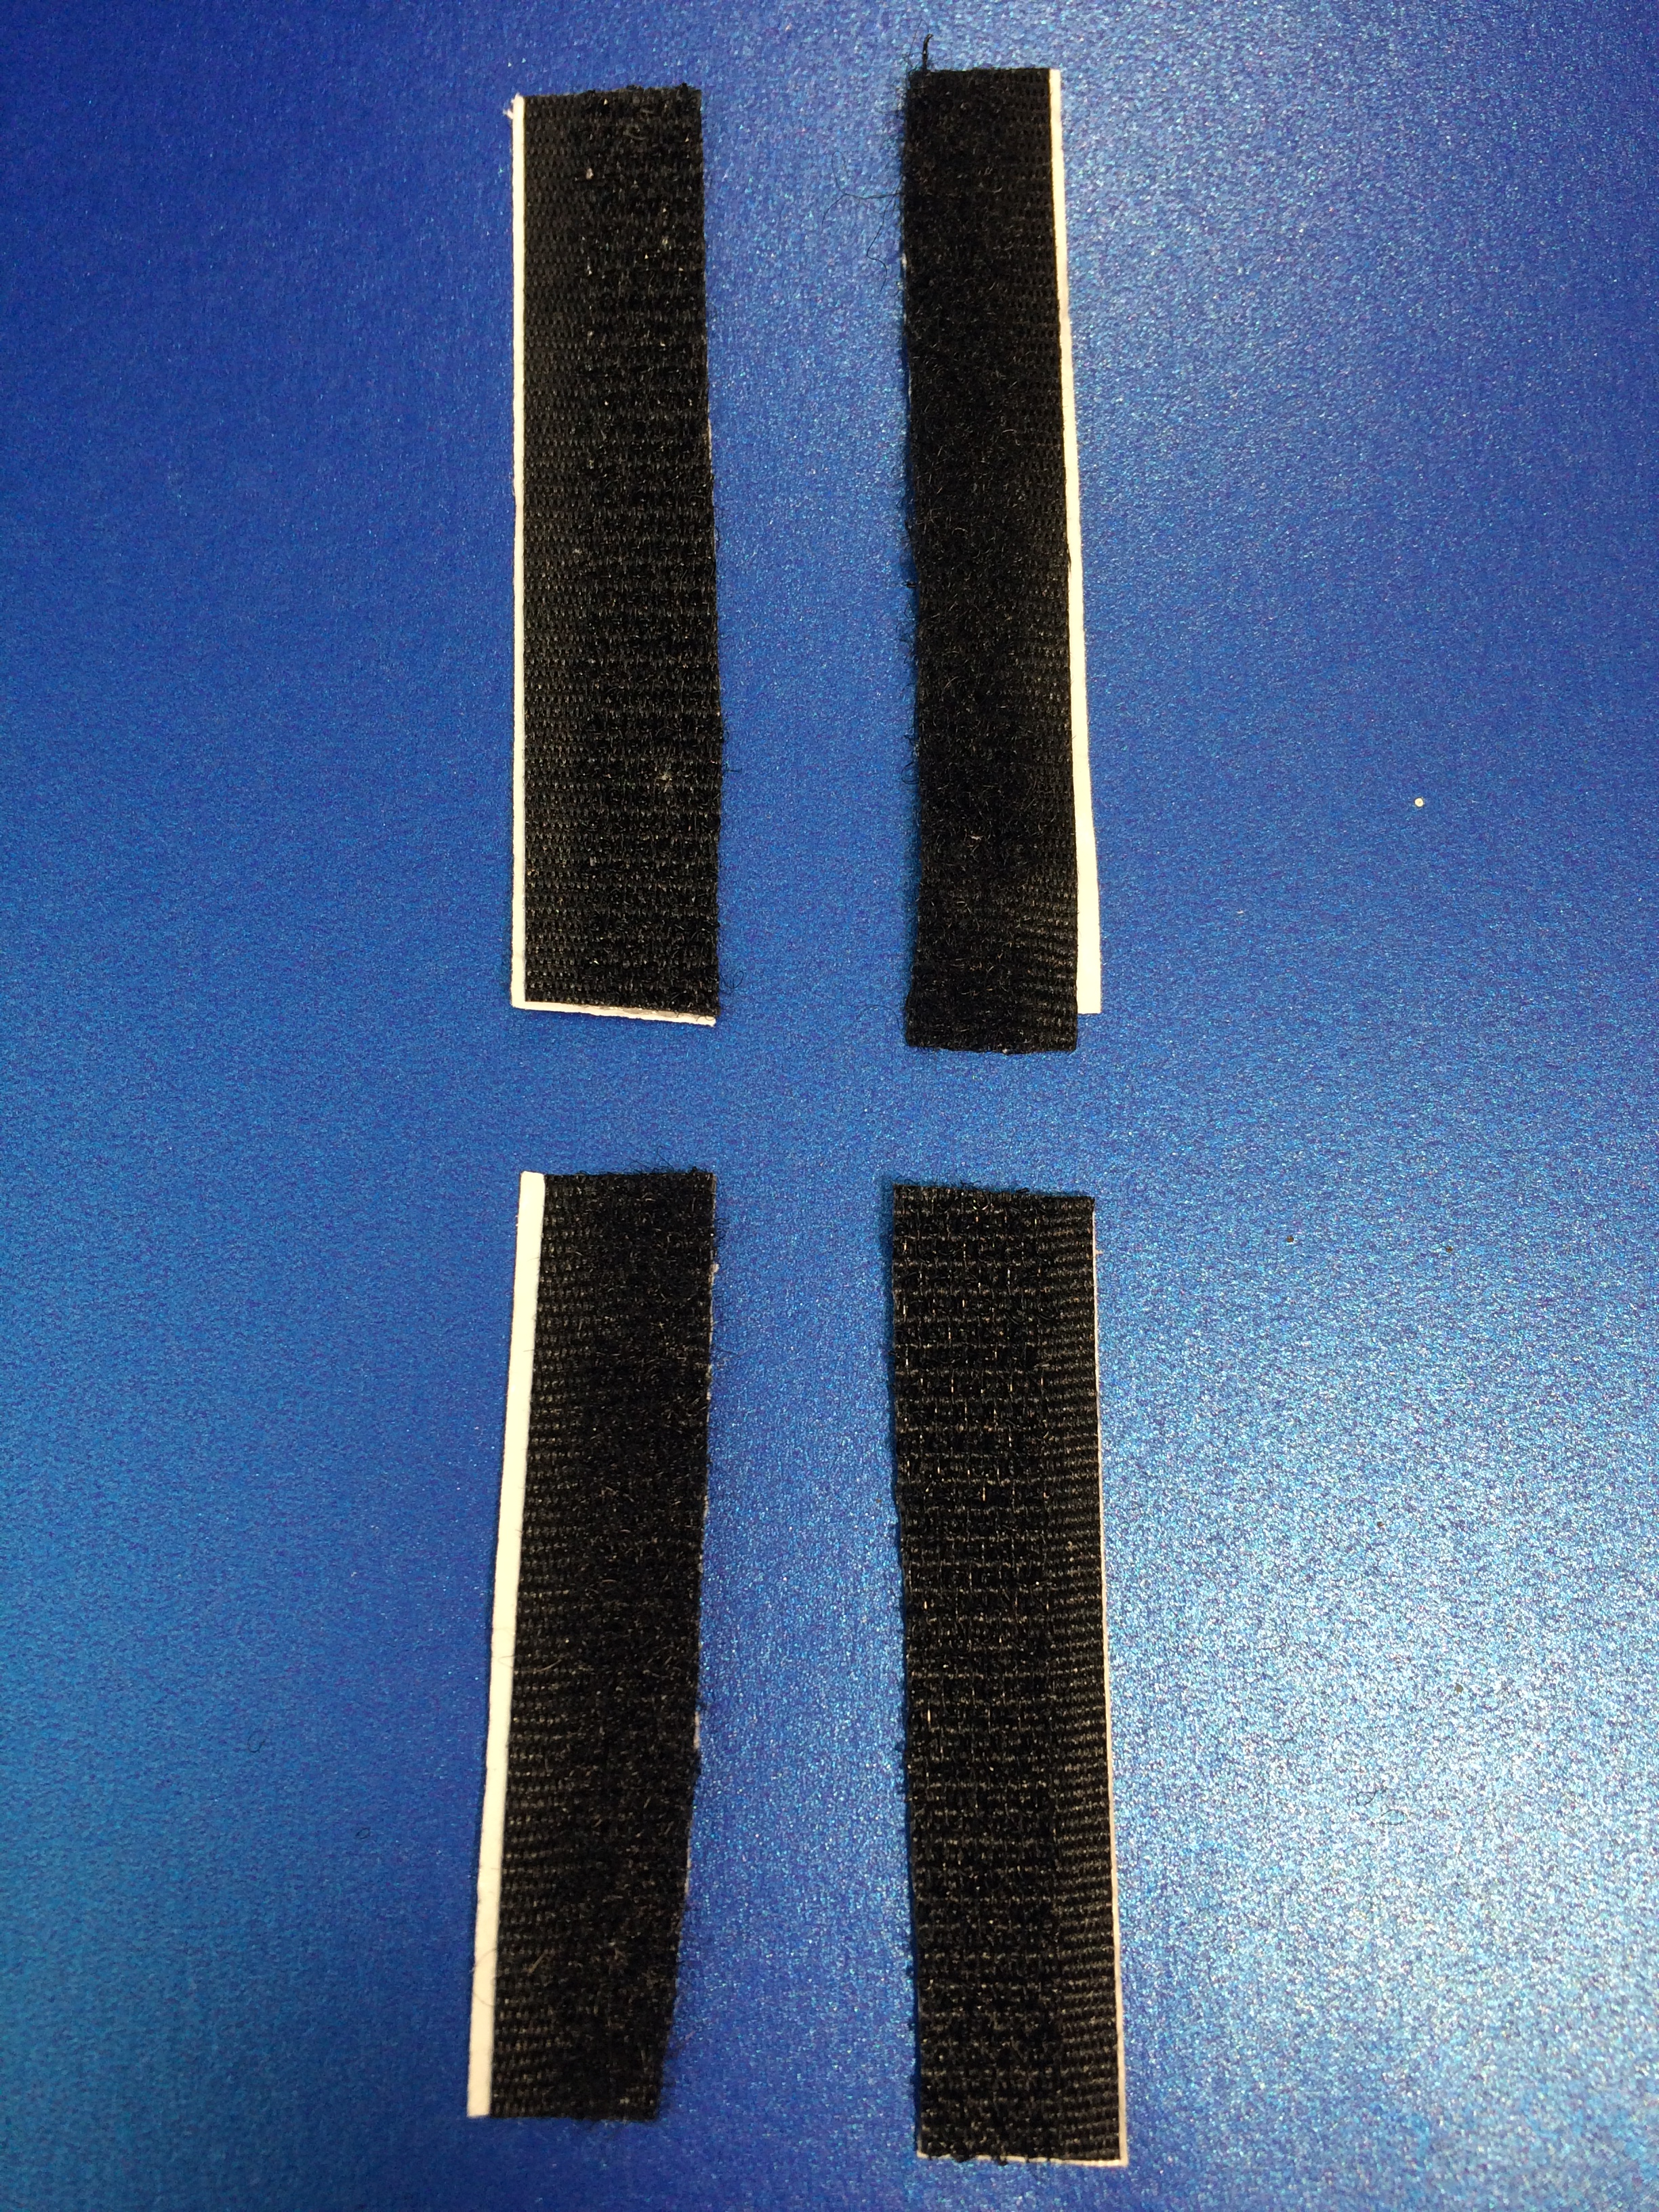 x2 Velcro strips for ICON unit